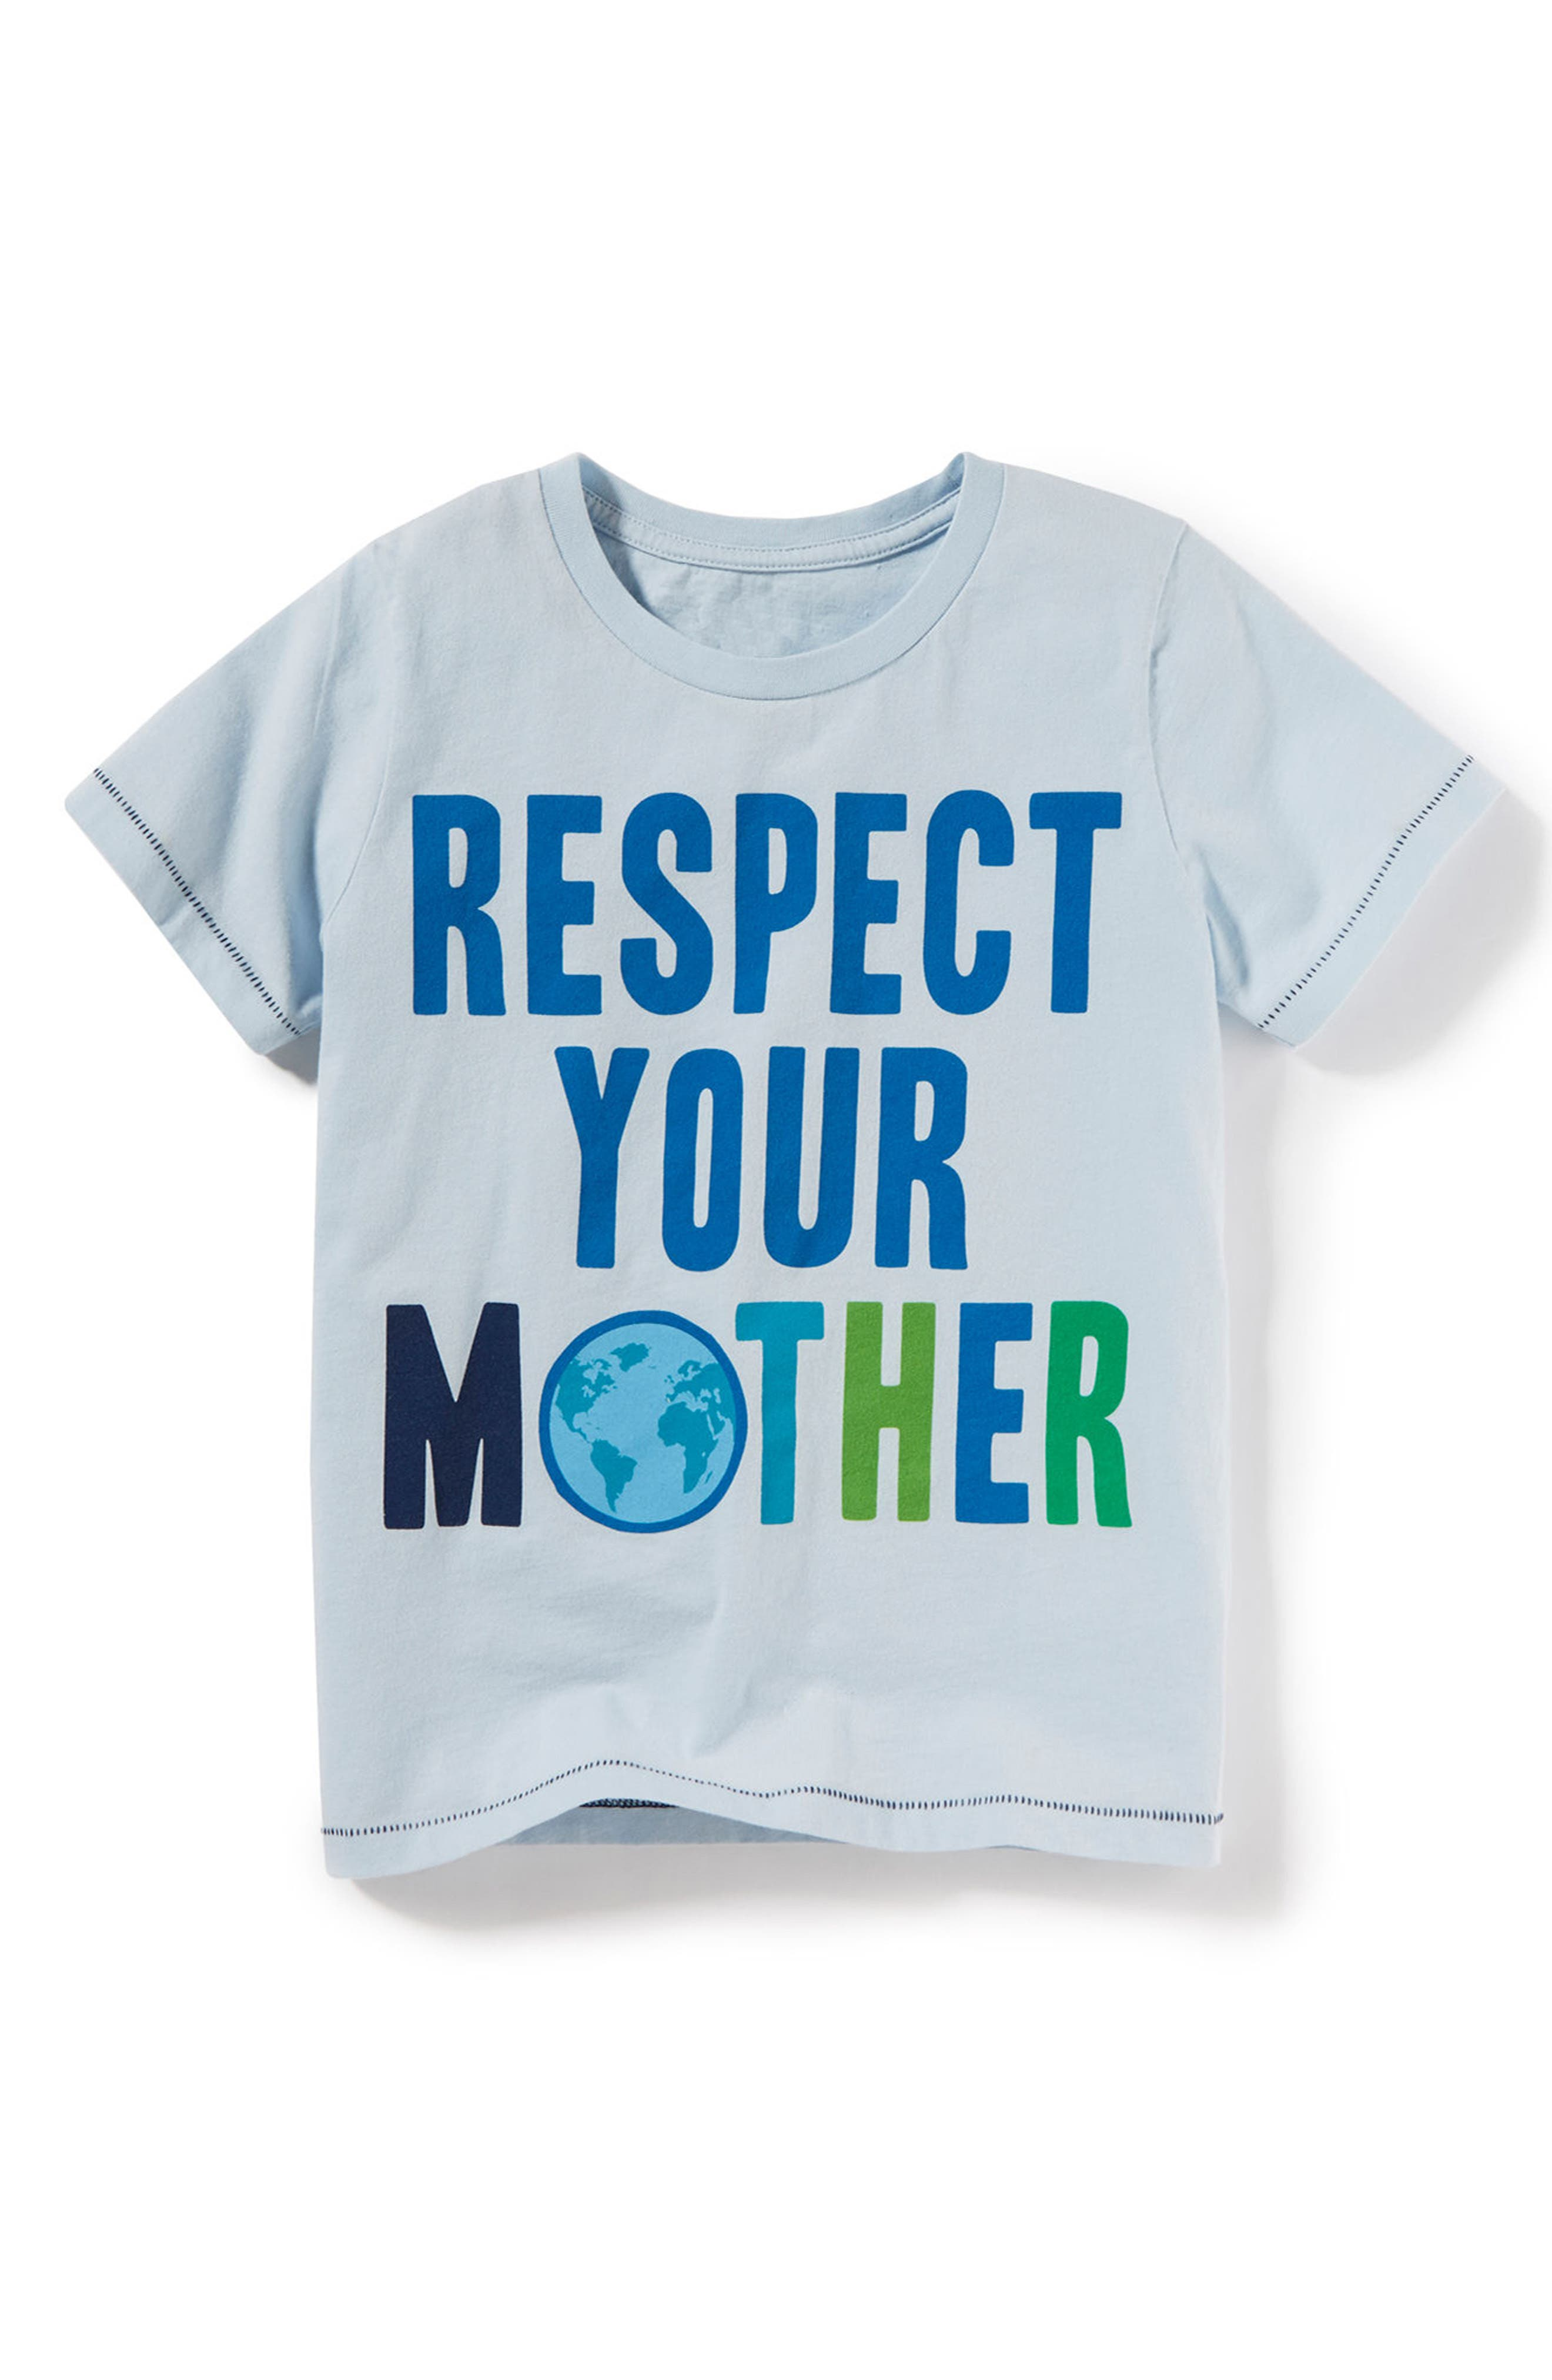 Respect Your Mother Graphic T-Shirt,                             Main thumbnail 1, color,                             400